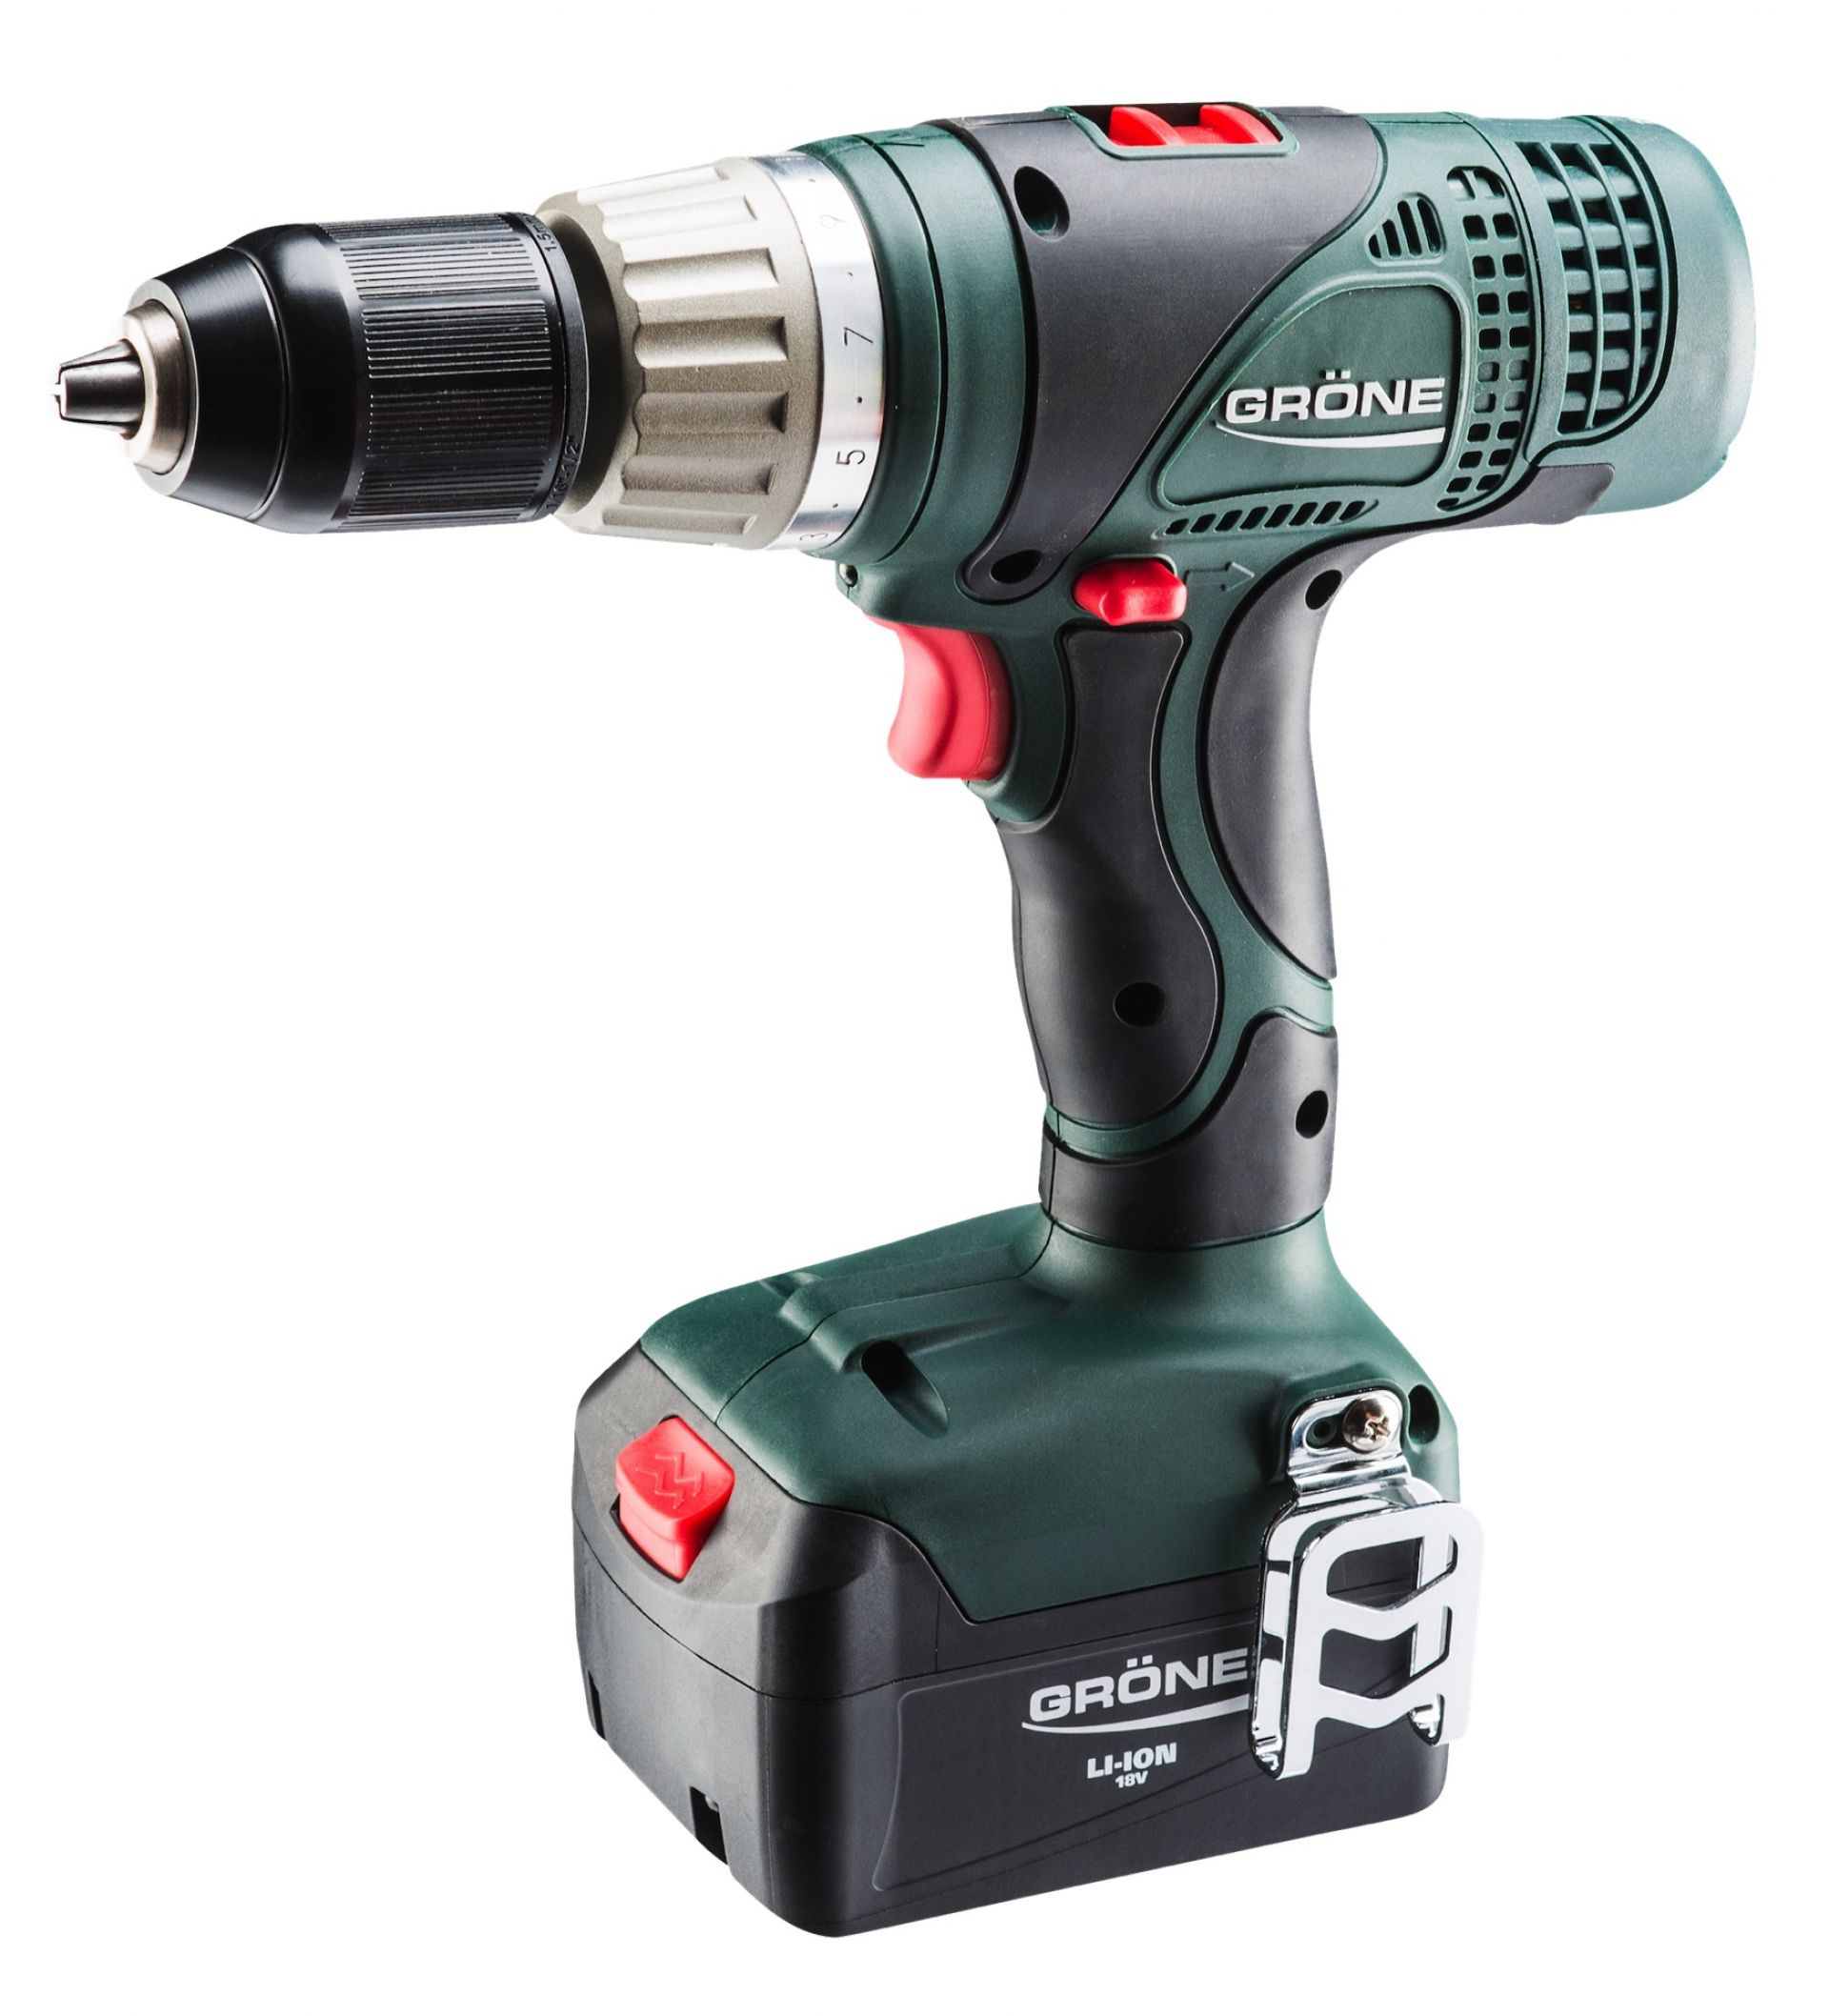 Battery Ed Drill Driver With A Mechanical Impact Professional Tool For Heavy Use Drilling Driving Working Keyhole Saws